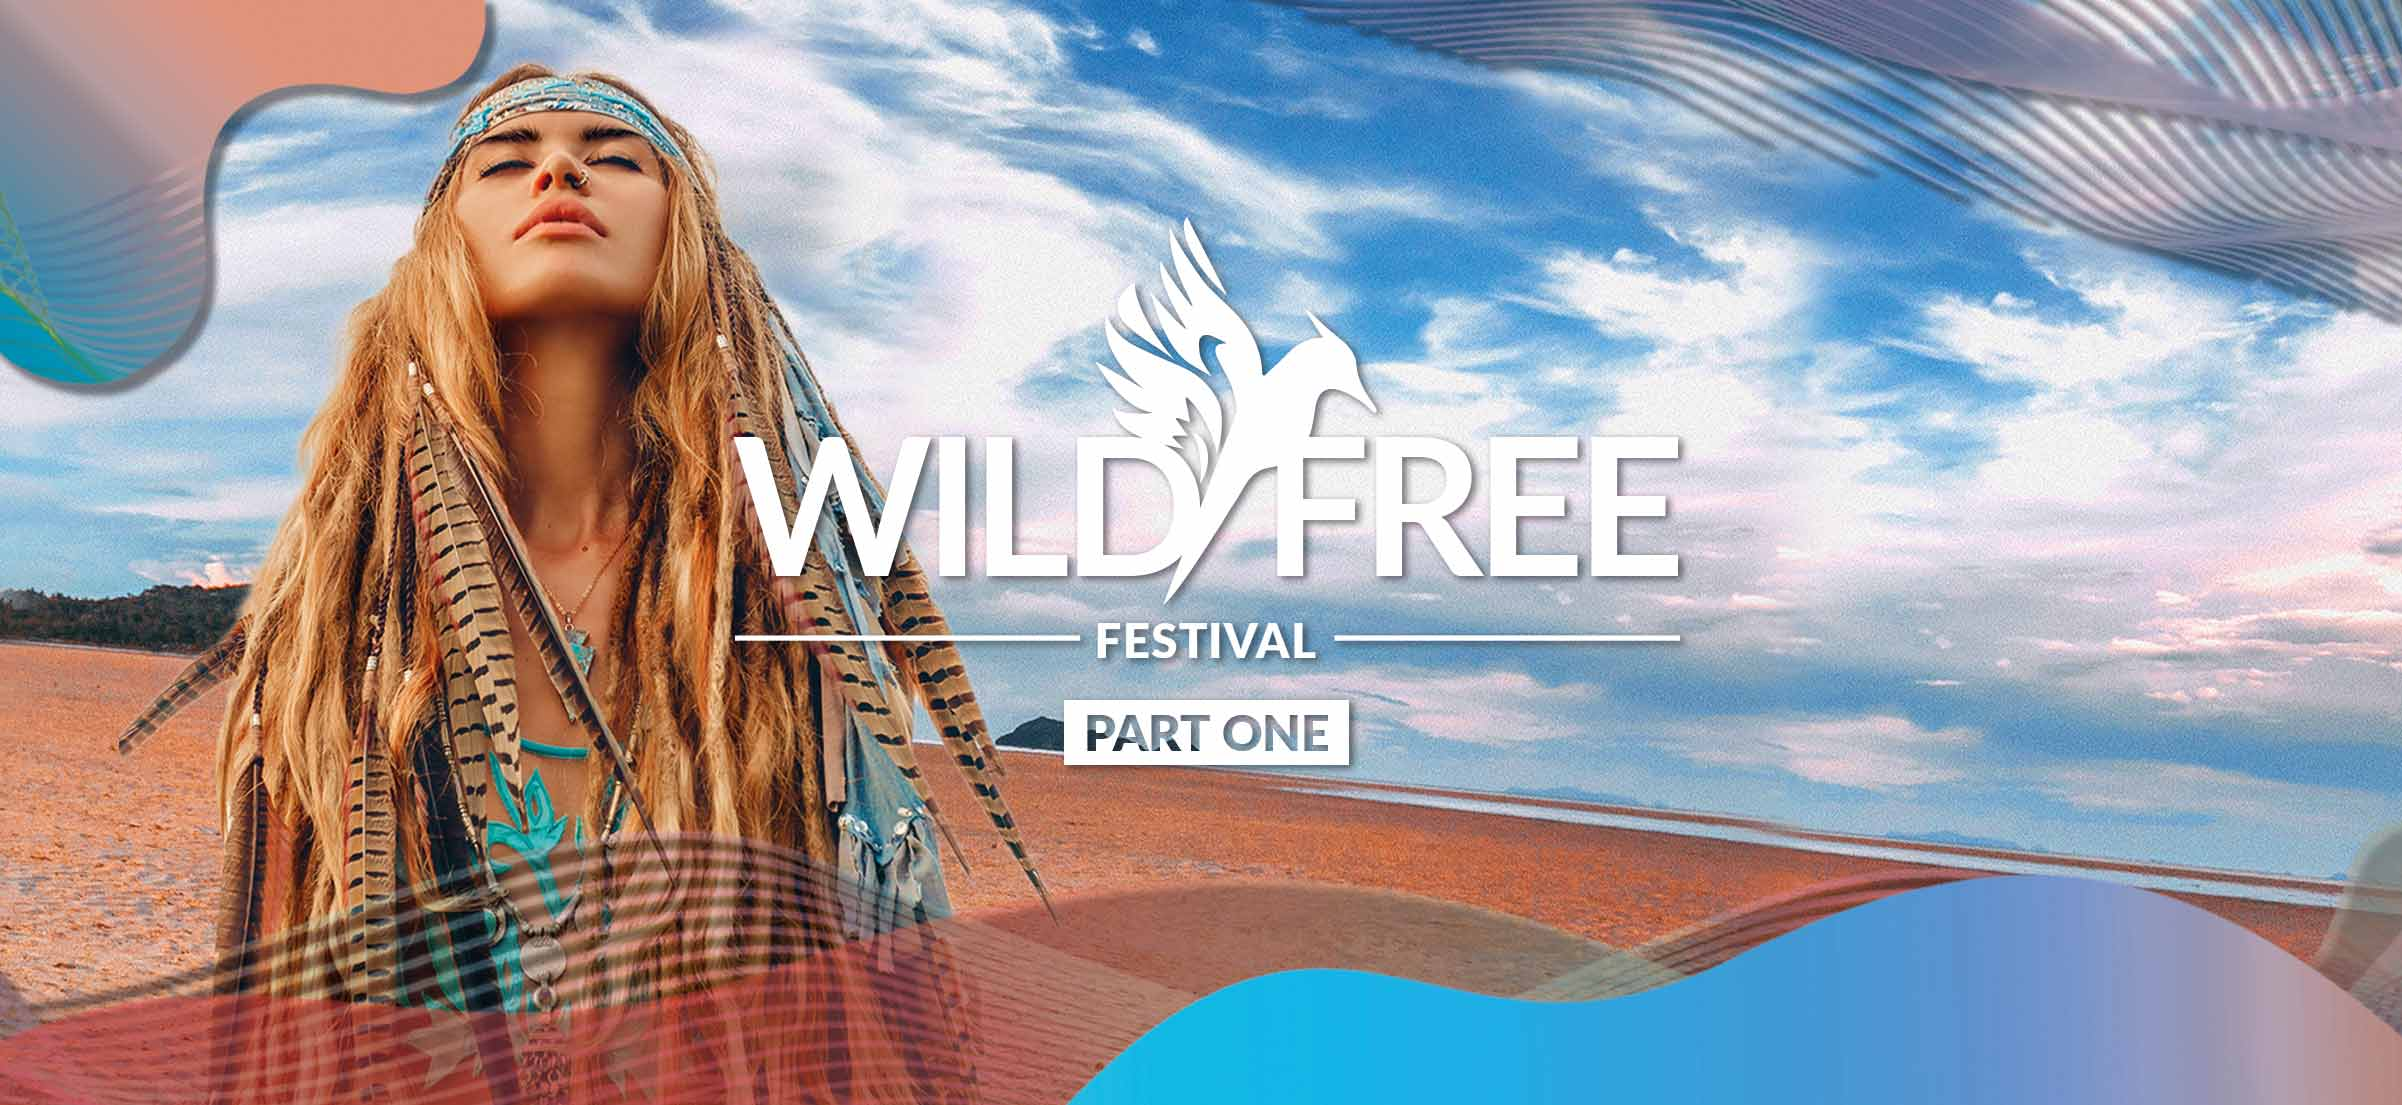 Wild and Free Festival – Part 1